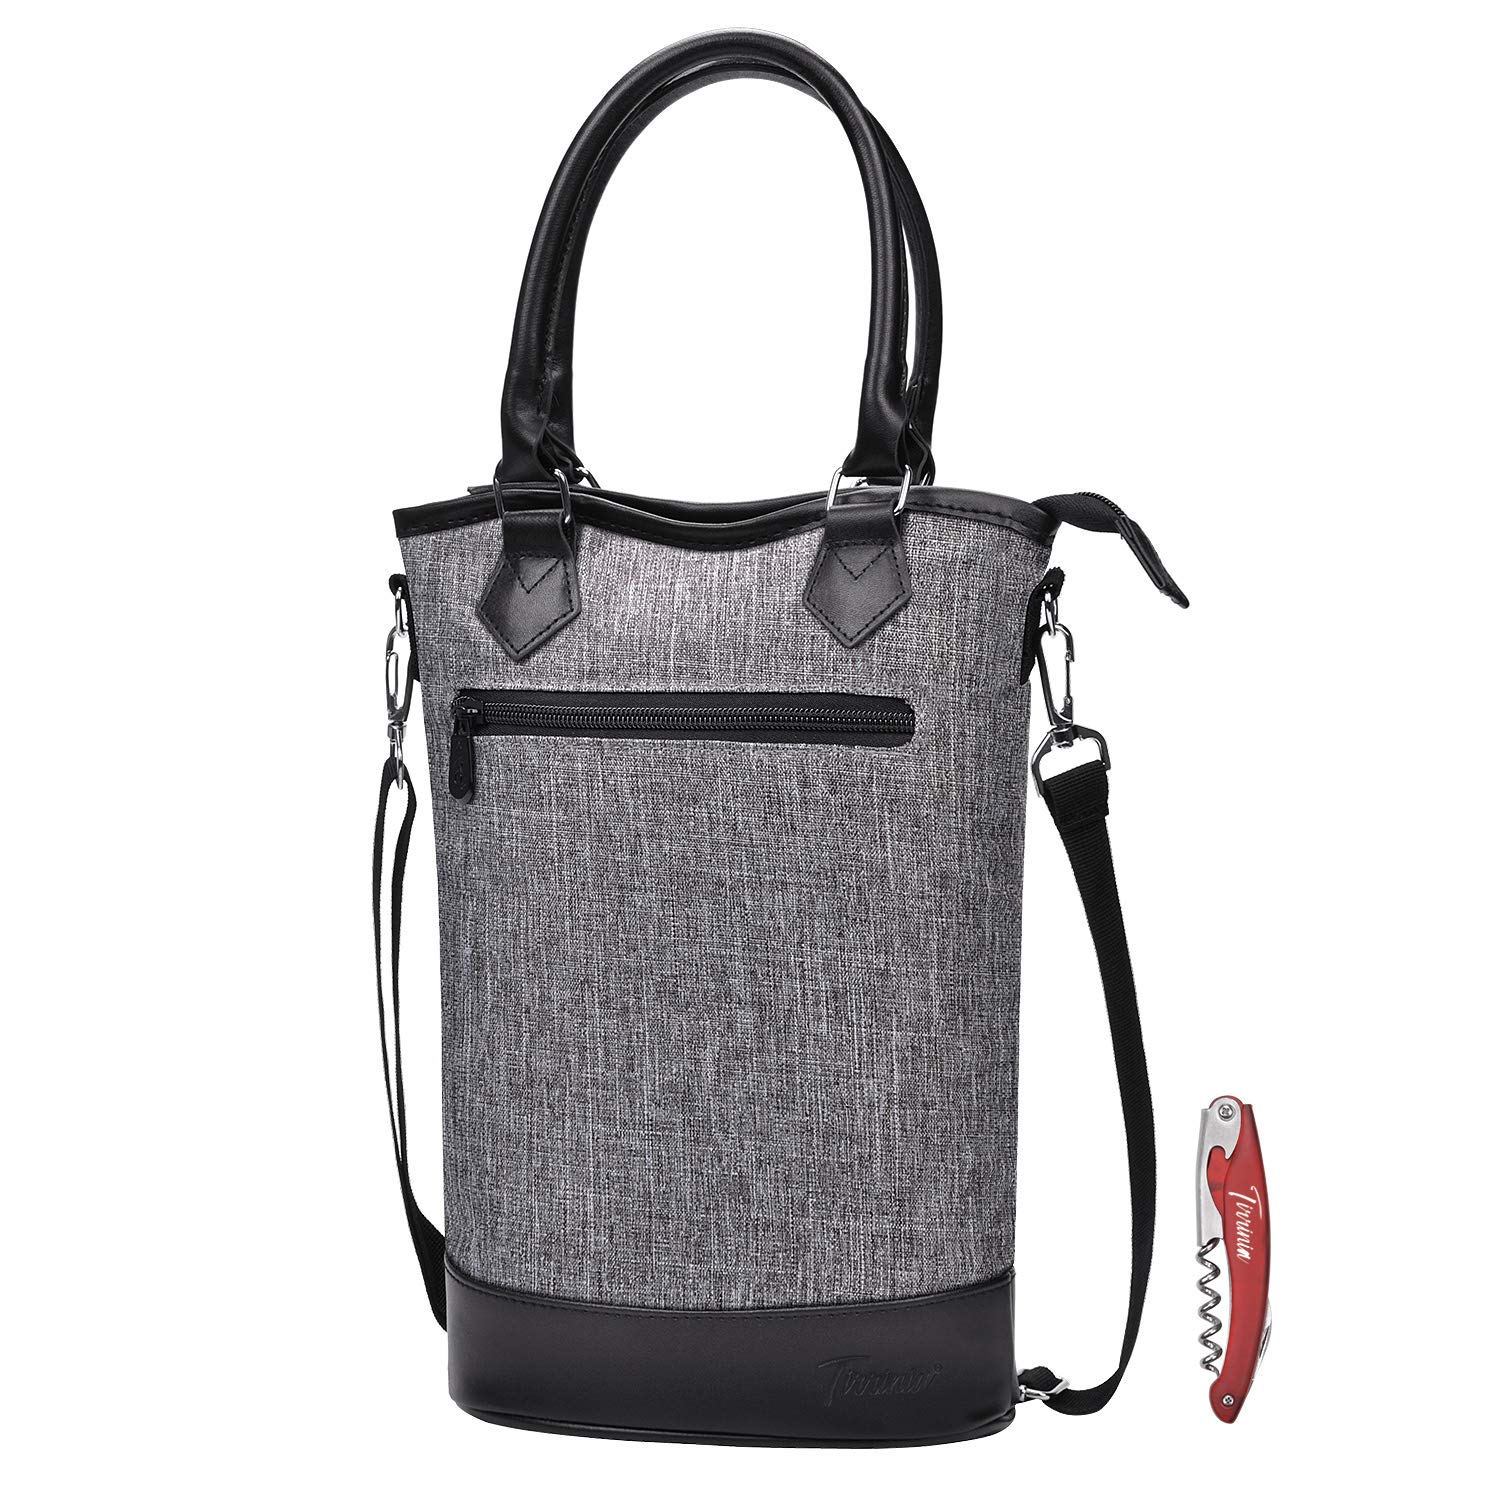 Tirrinia Insulated Wine Carrier Tote - Travel Padded 2 Bottle Wine/Champagne Cooler Bag with Handle and Adjustable Shoulder Strap + Free Corkscrew, Great Wine Lover Gift, Grey